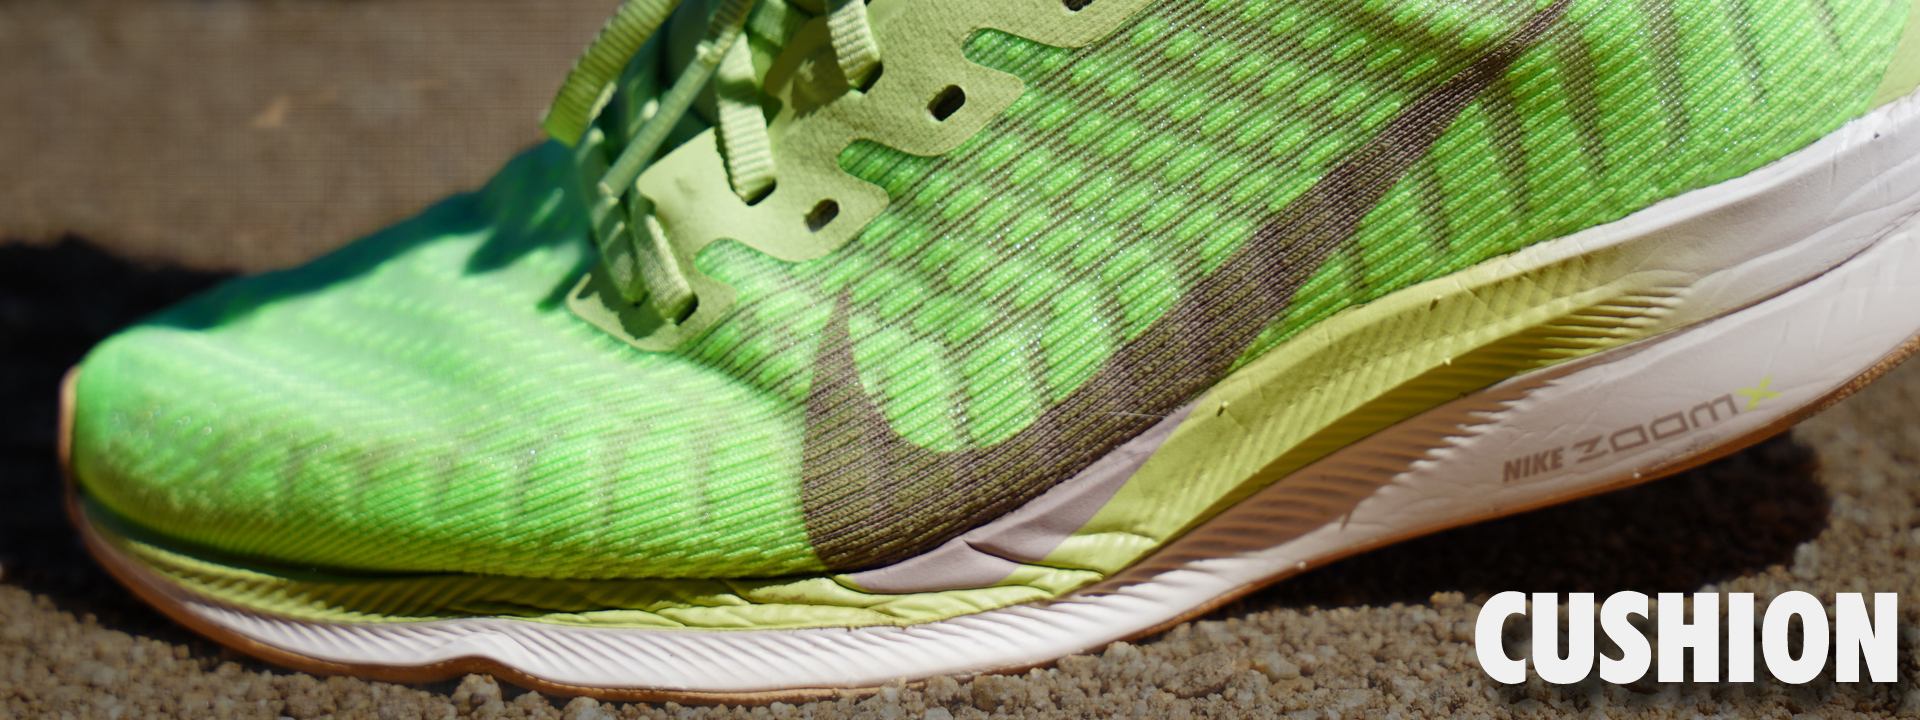 Nike Zoom Pegasus Turbo 2 Performance Review - WearTesters